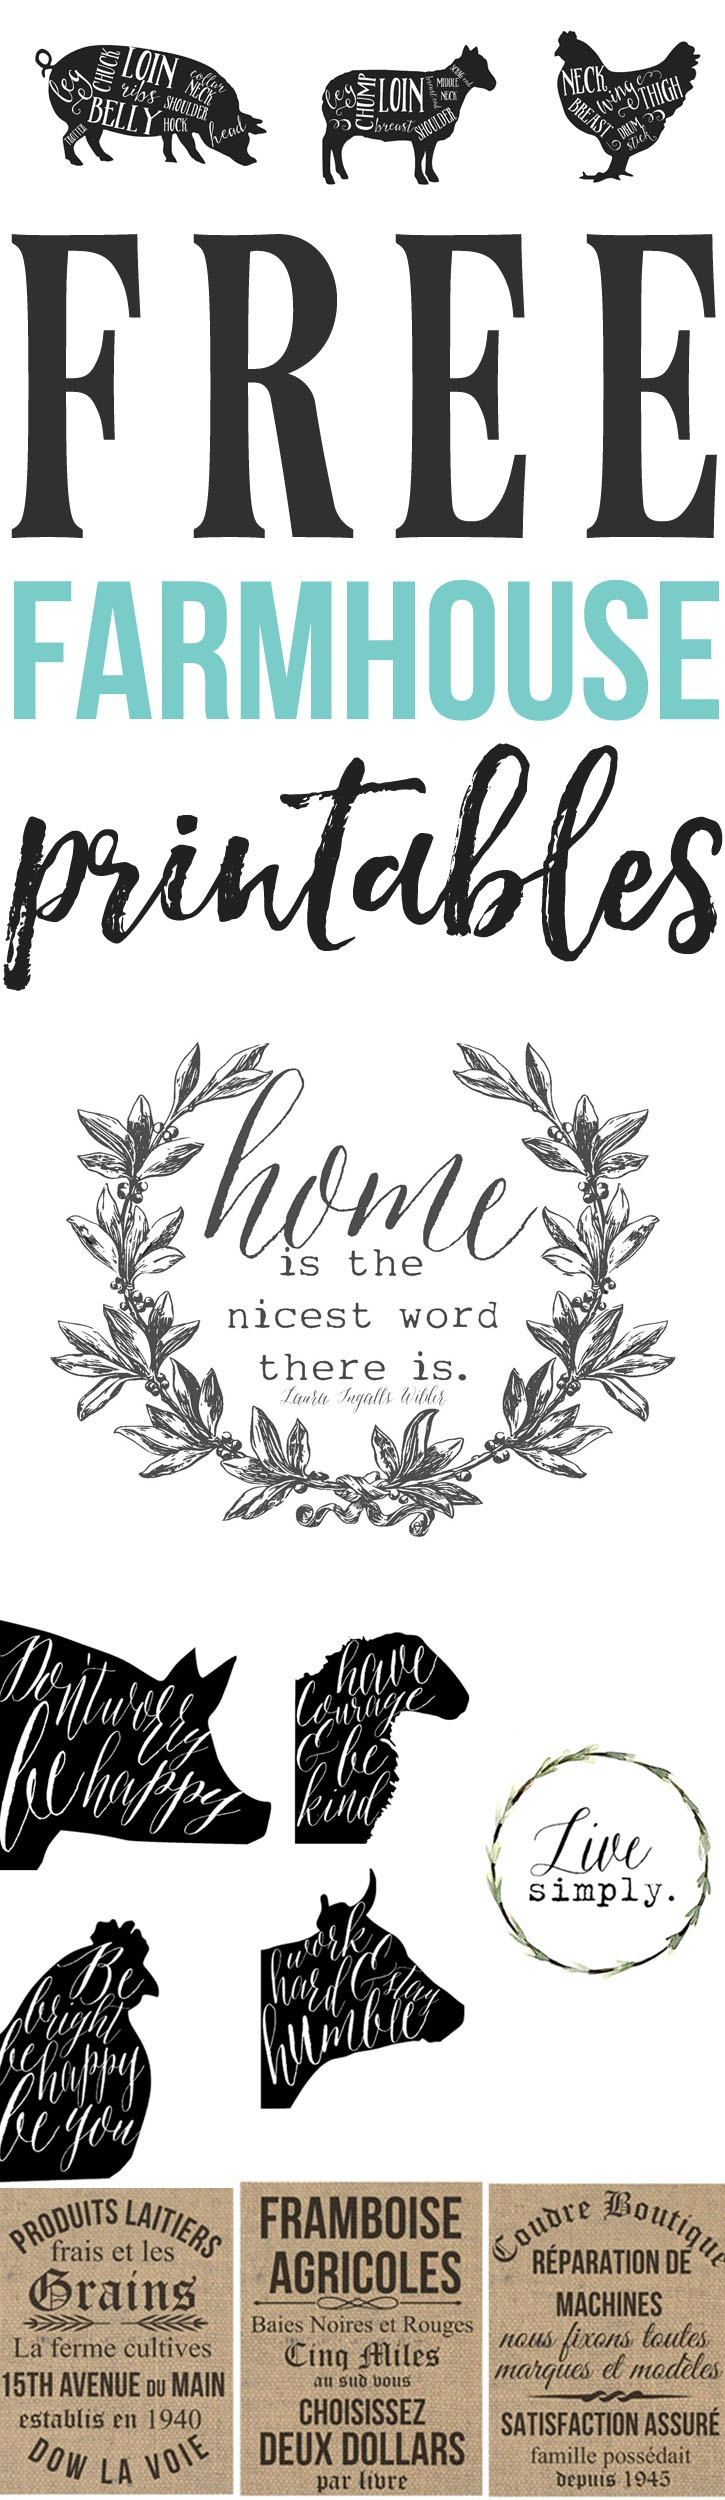 Free Farmhouse Printables For Your Home - The Mountain View Cottage - Free Printable Sud